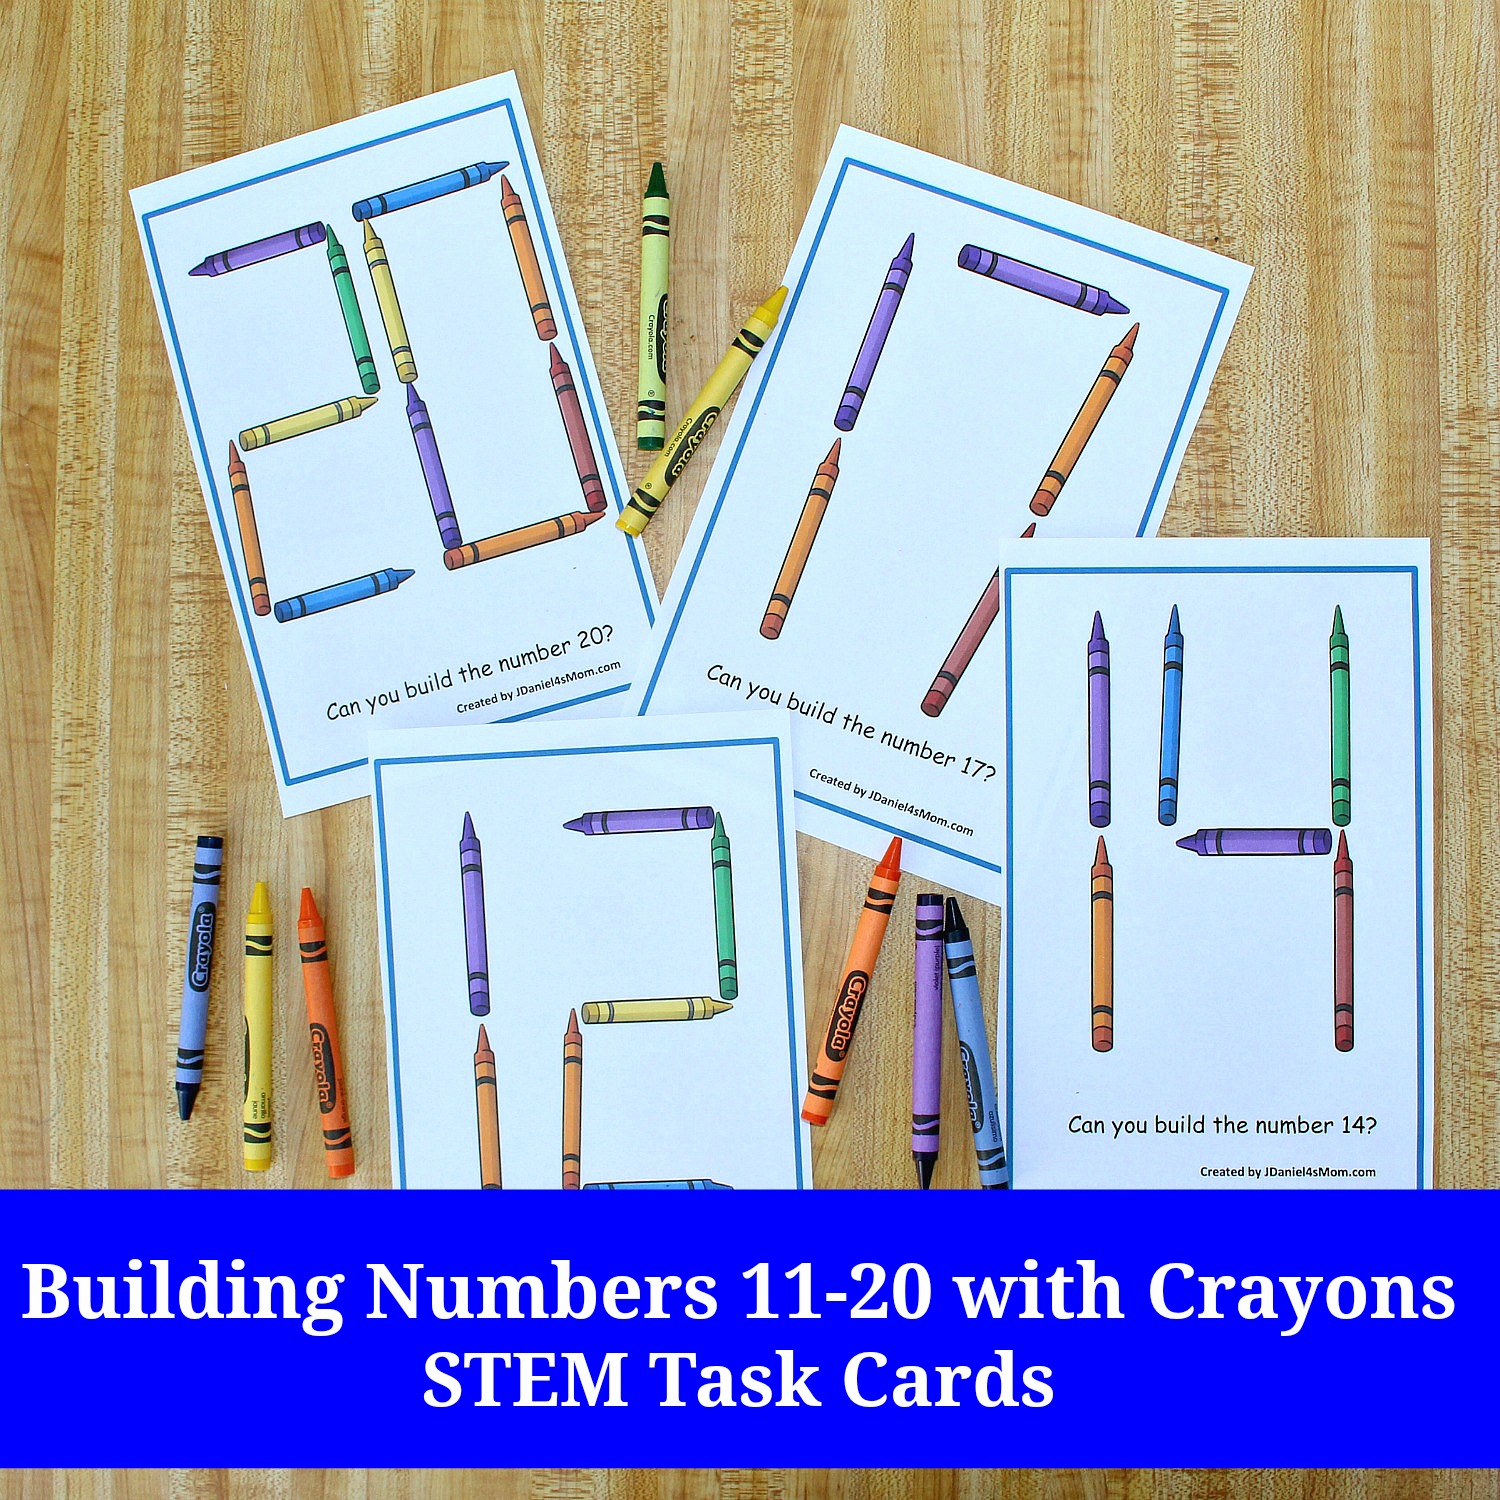 Building Numbers 11-20 with Crayons STEM Task Cards